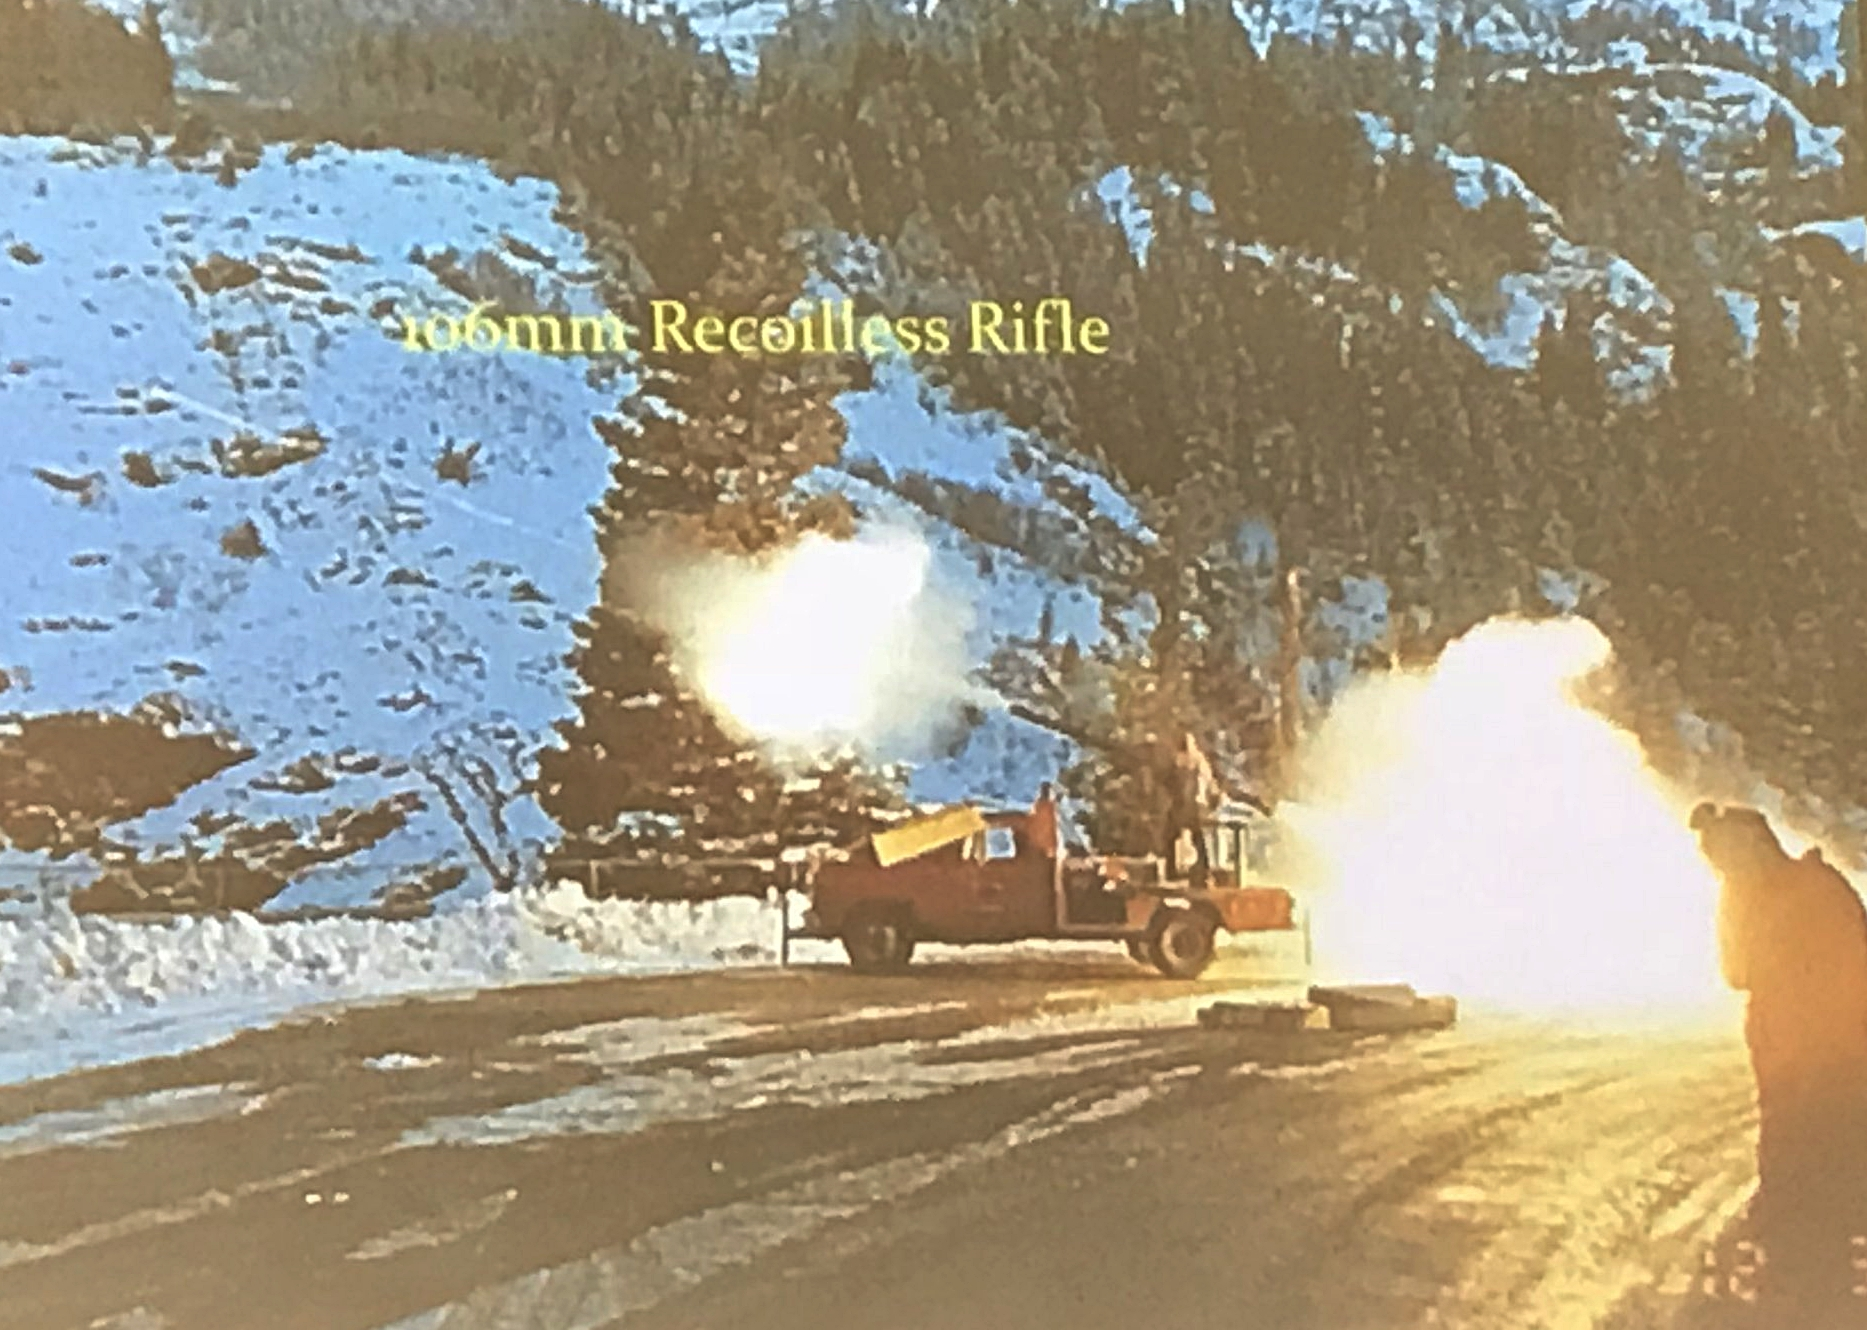 106mm Recoilless Rifle being shot - the fire out the back of the rifle was used to avoid recoil which meant it could be mounted on a truck and become portable. They also shared it's ability to destroy front windshields so they started laying a mattress on the windshield to avoid driving back with shattered glass!